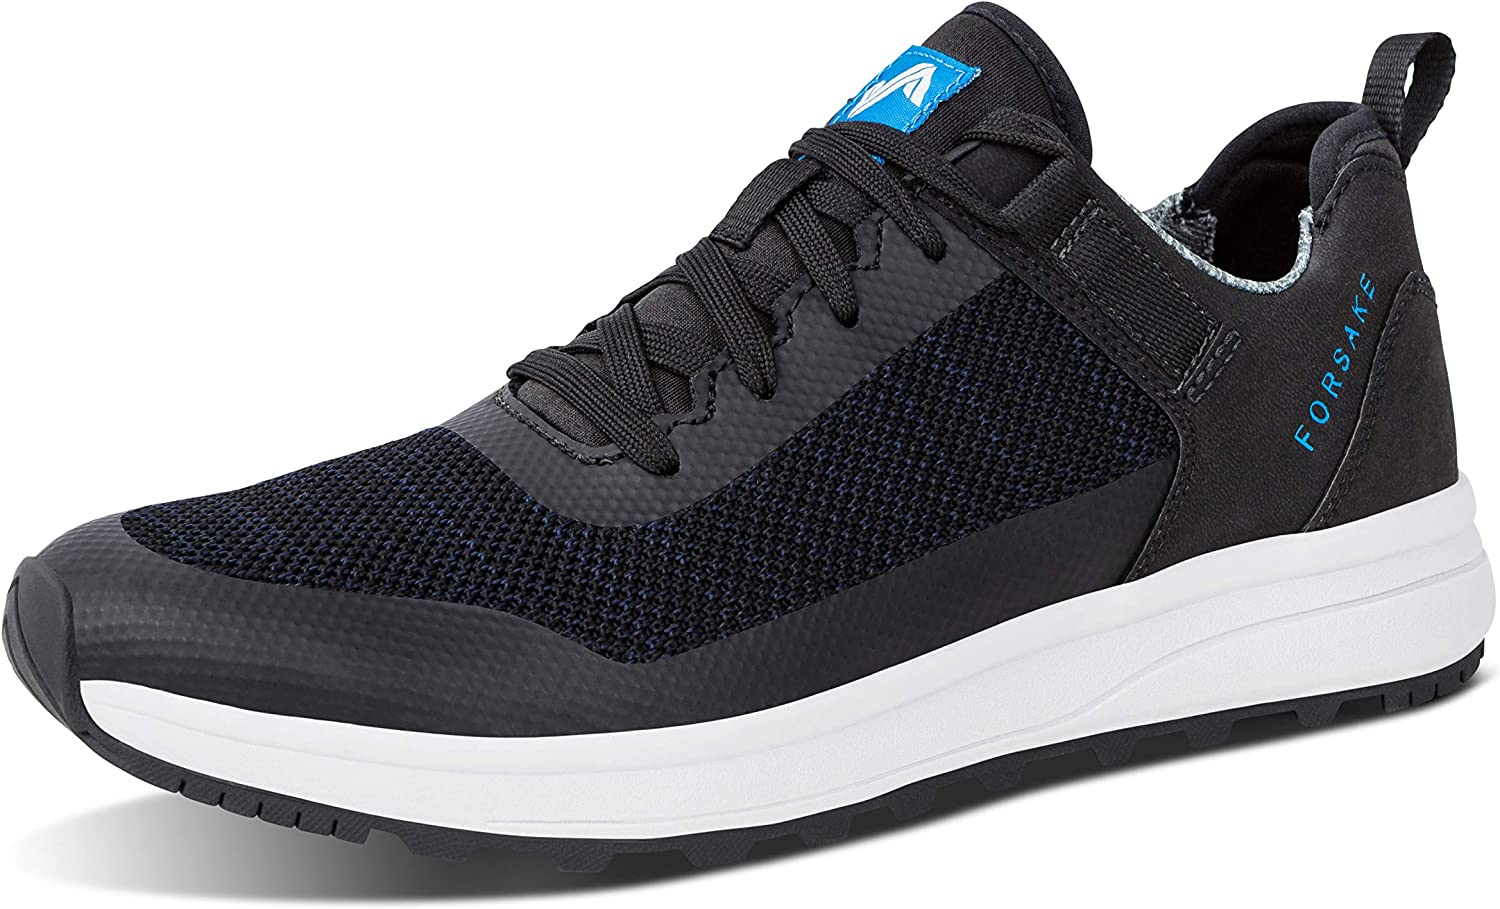 Forsake 販売期間 限定のお得なタイムセール Maddox – Men's Knit Sneaker Outdoor 受注生産品 Breathable